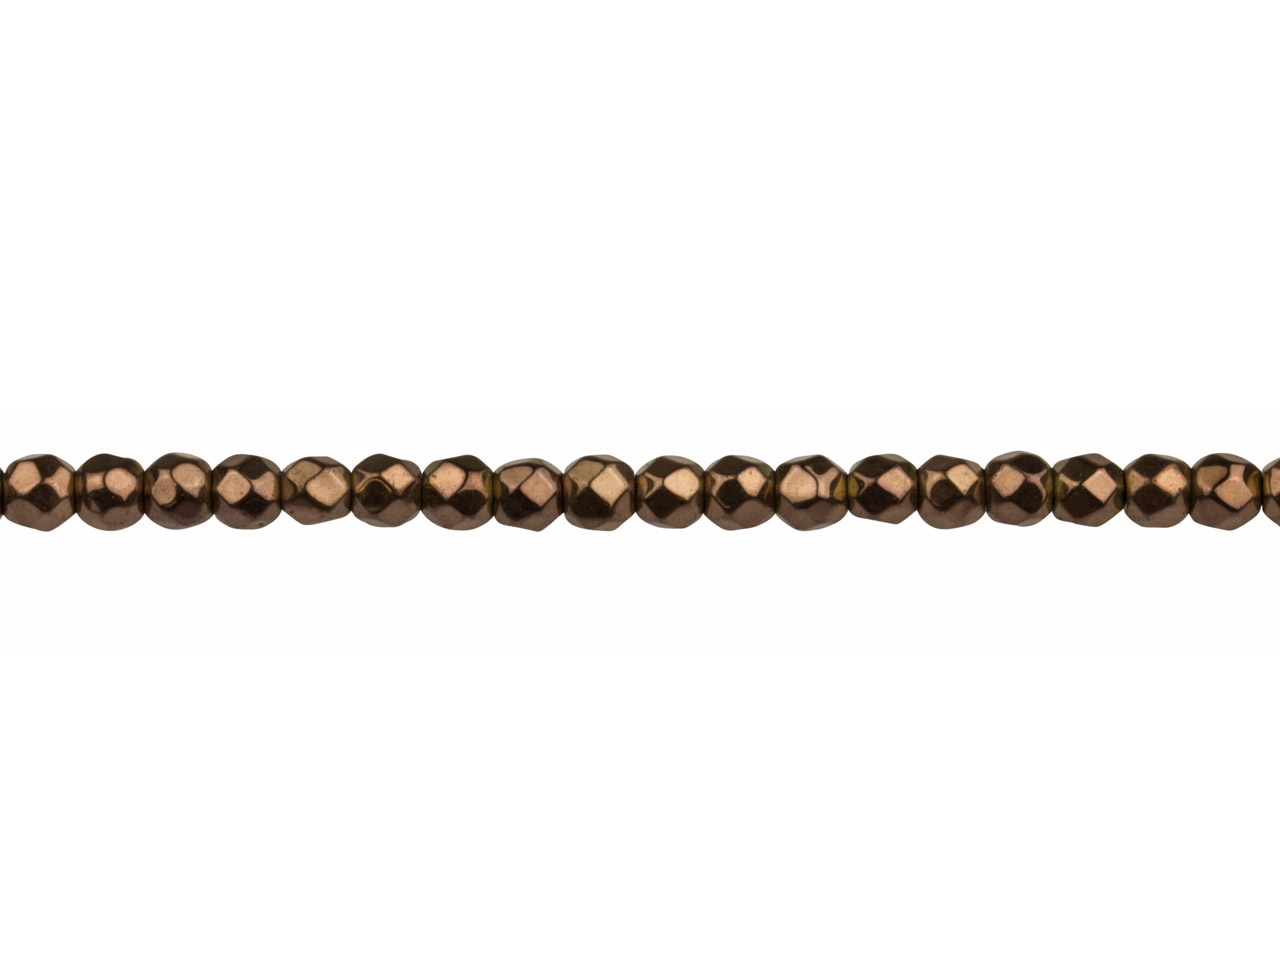 Electroplated Hematite Semi        Precious Faceted Round Beads,      Bronze, 4mm, 16